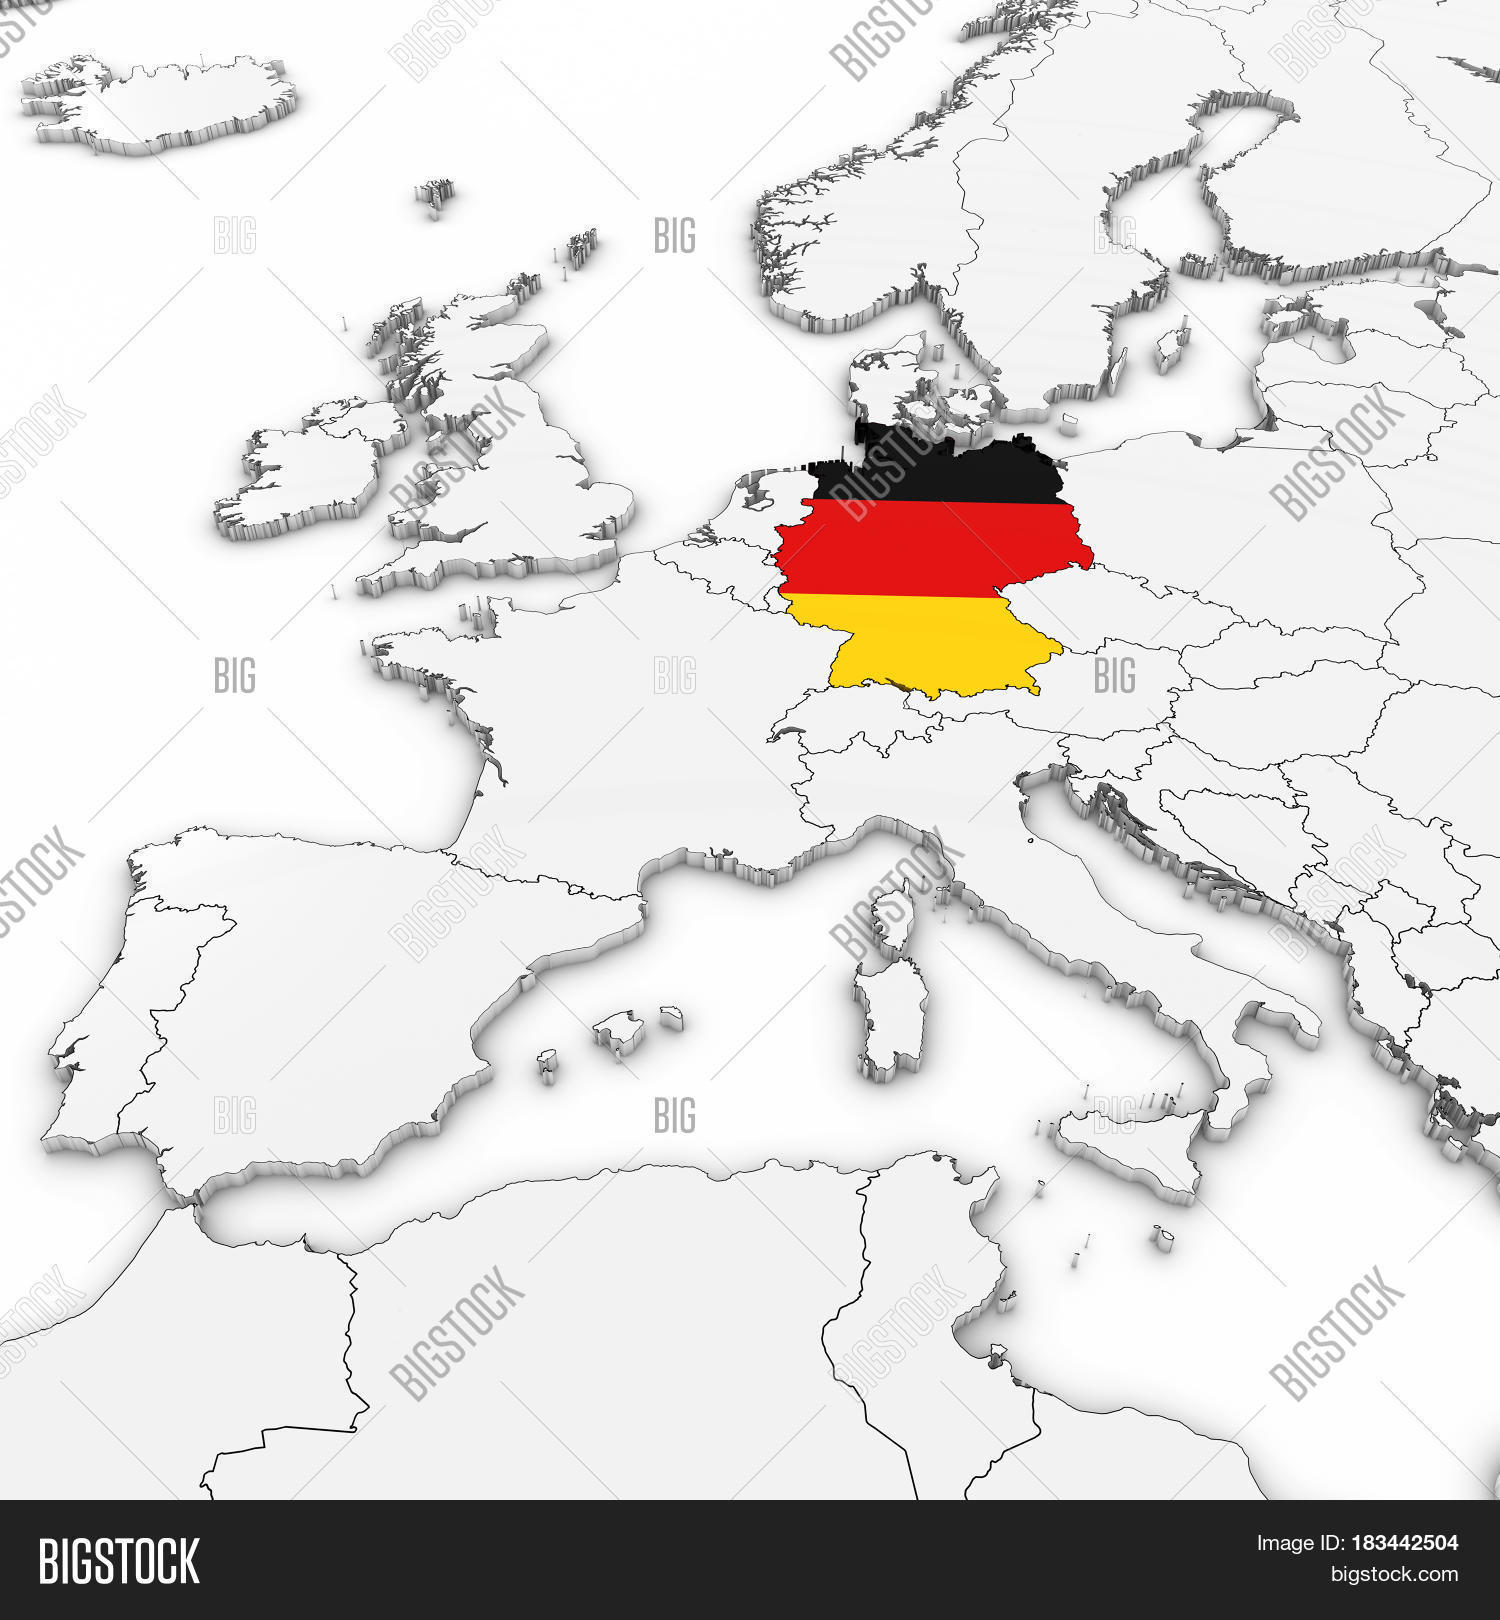 Map Of Germany 3d.3d Map Germany German Image Photo Free Trial Bigstock